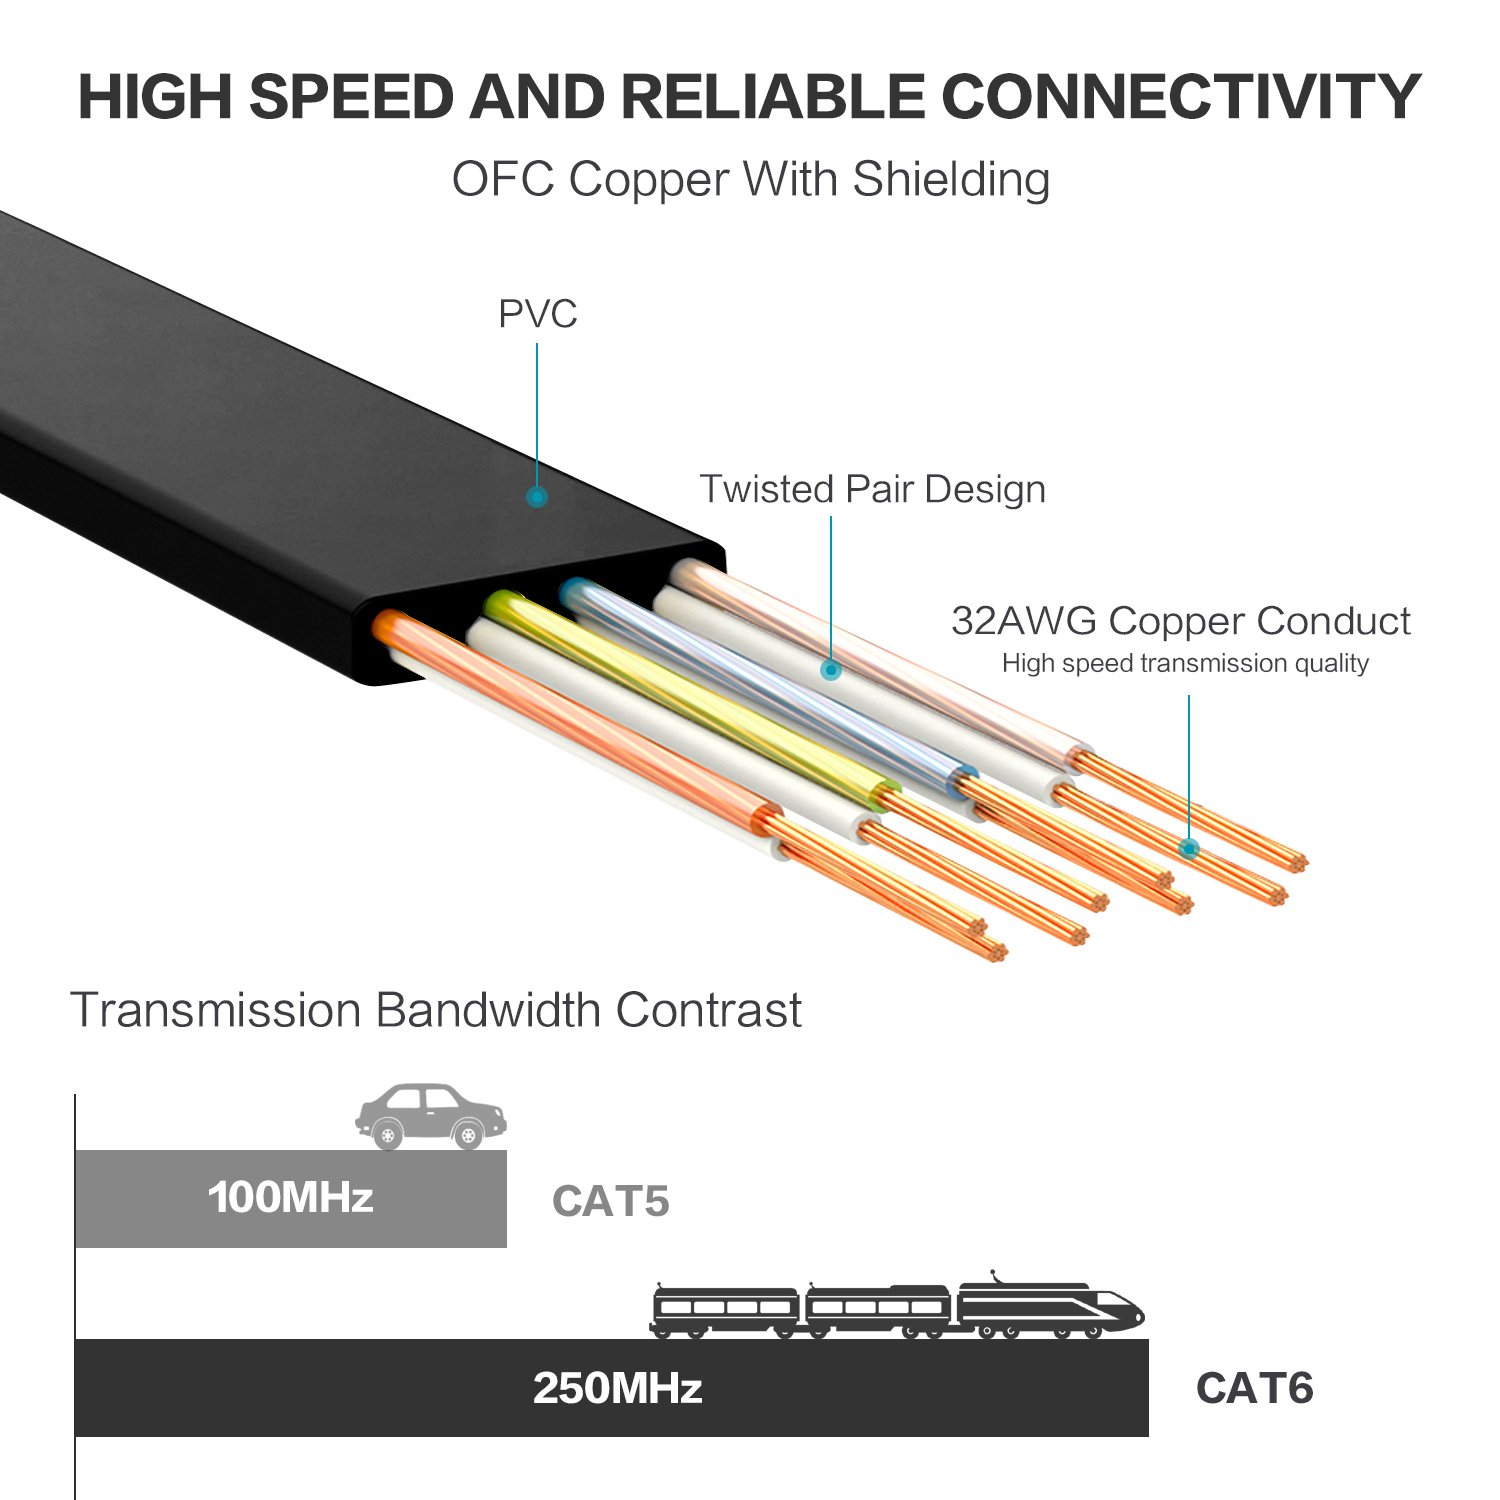 Cat 6 Ethernet Cable 50 ft Patch Panel Flat High Speed Internet LAN Computer Network with Snagless RJ45 Connectors Patch Cable Cord for Xbox Modem Printer Router